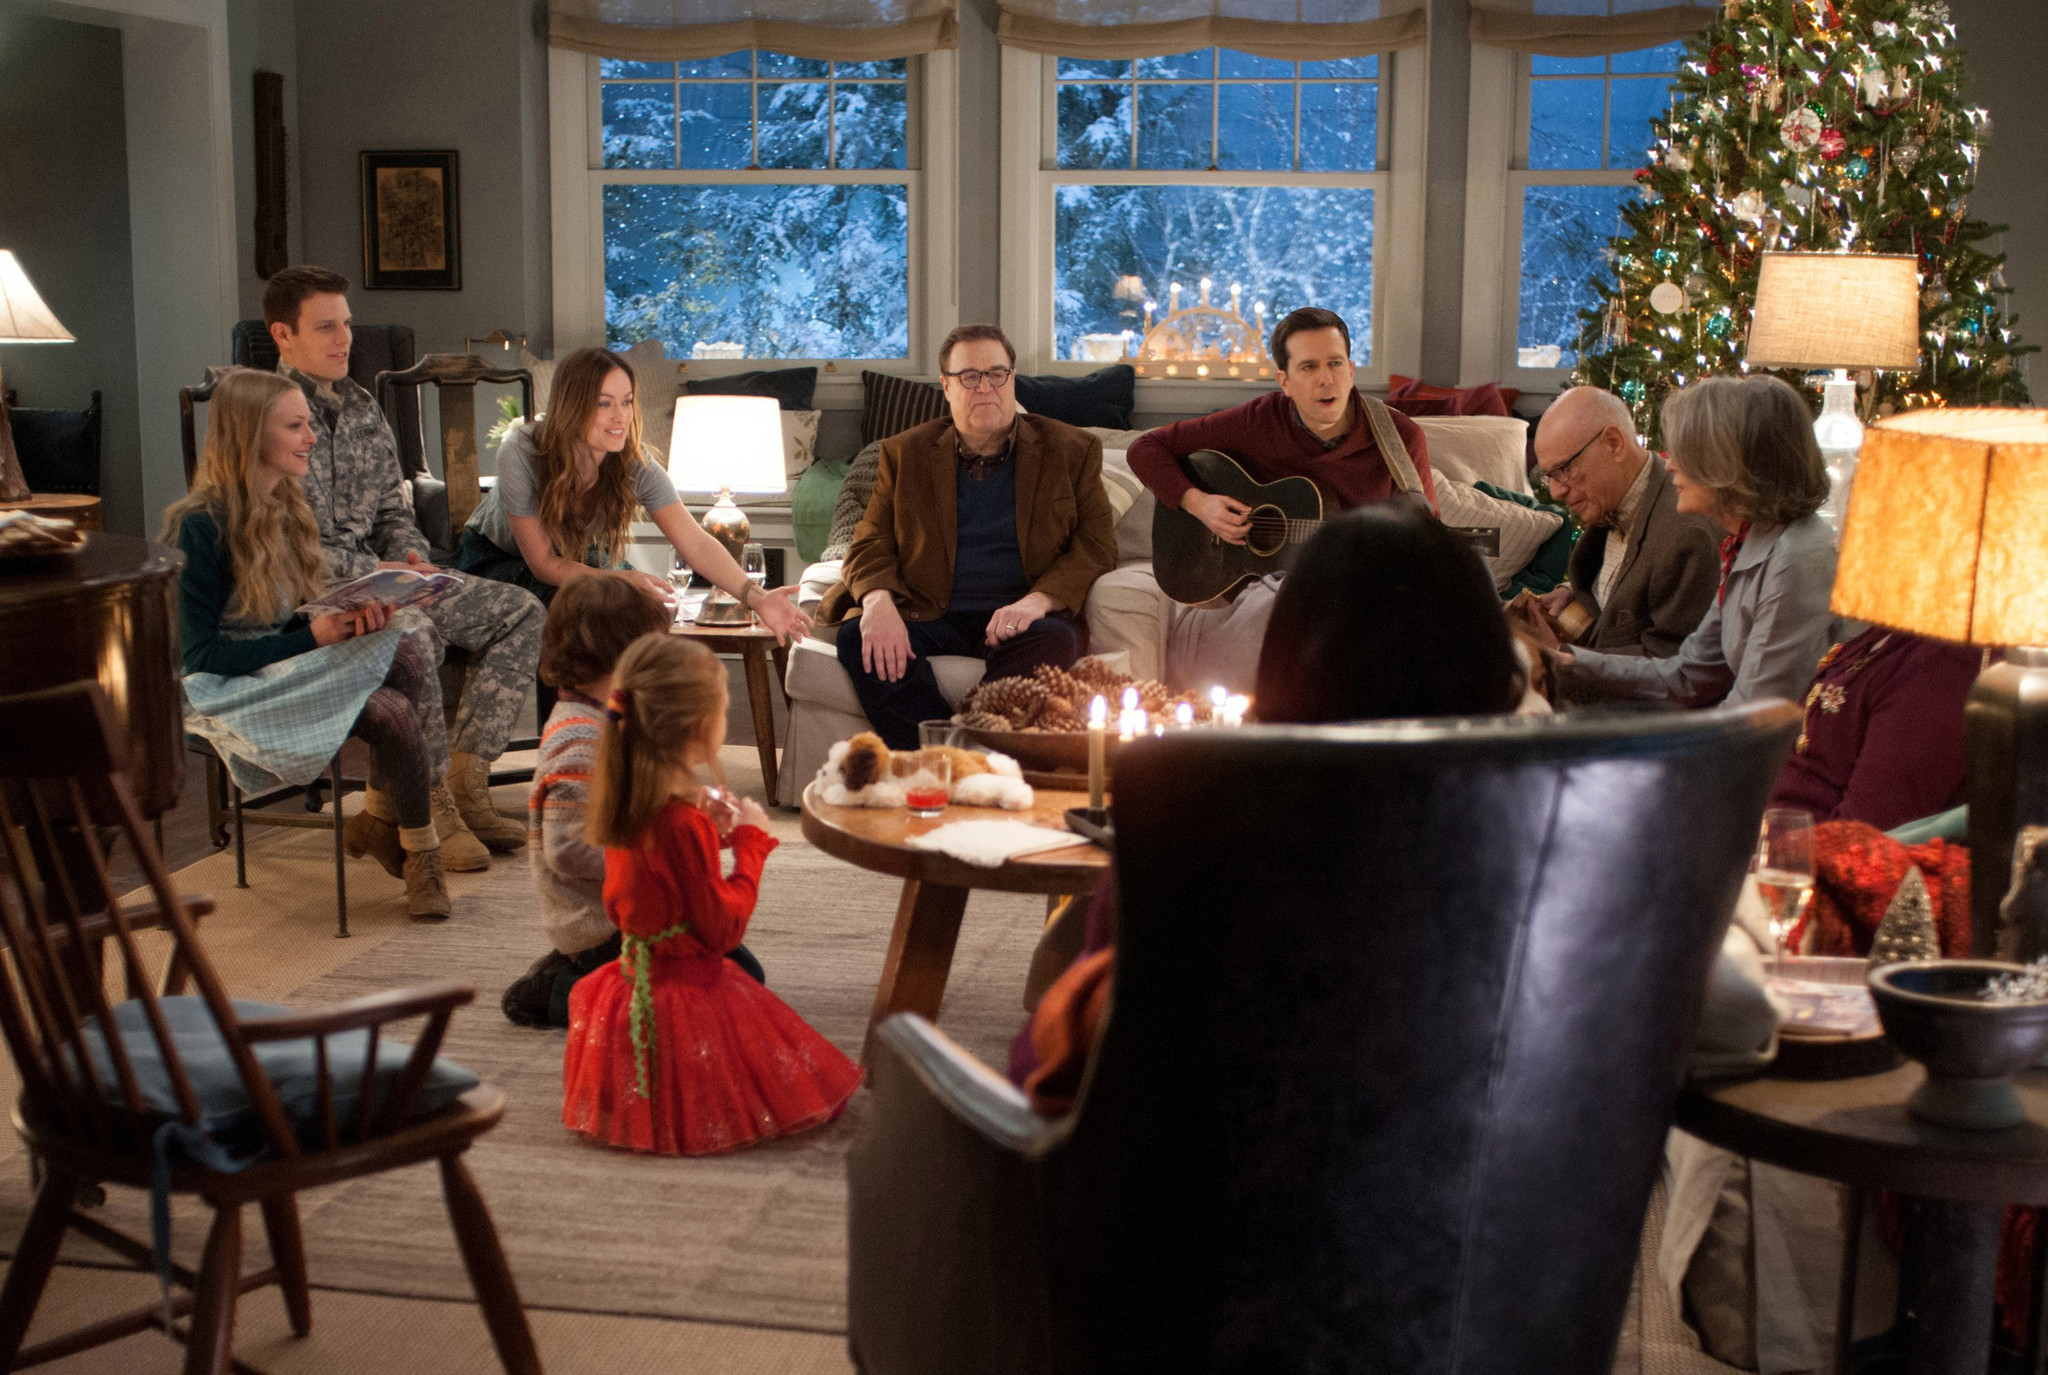 Review: It's hard to like the messy and overdone 'Love the Coopers'